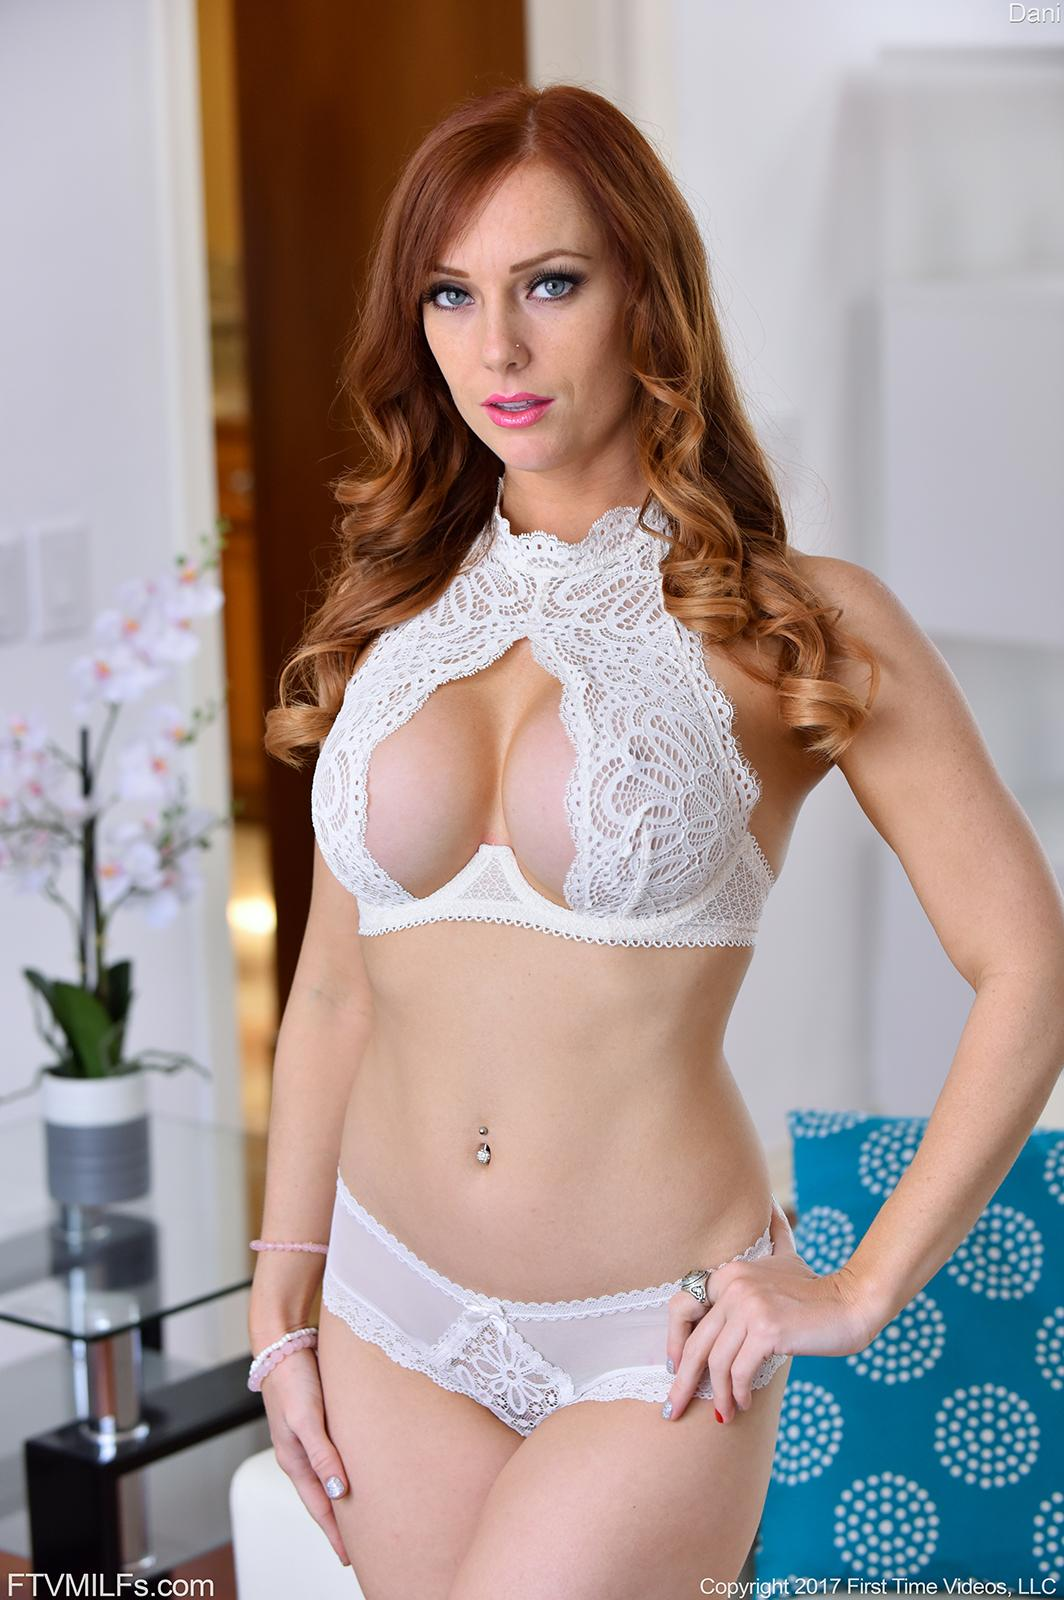 Redhead Babe Dani Jensen Strips For You In Her Lacy Lingerie